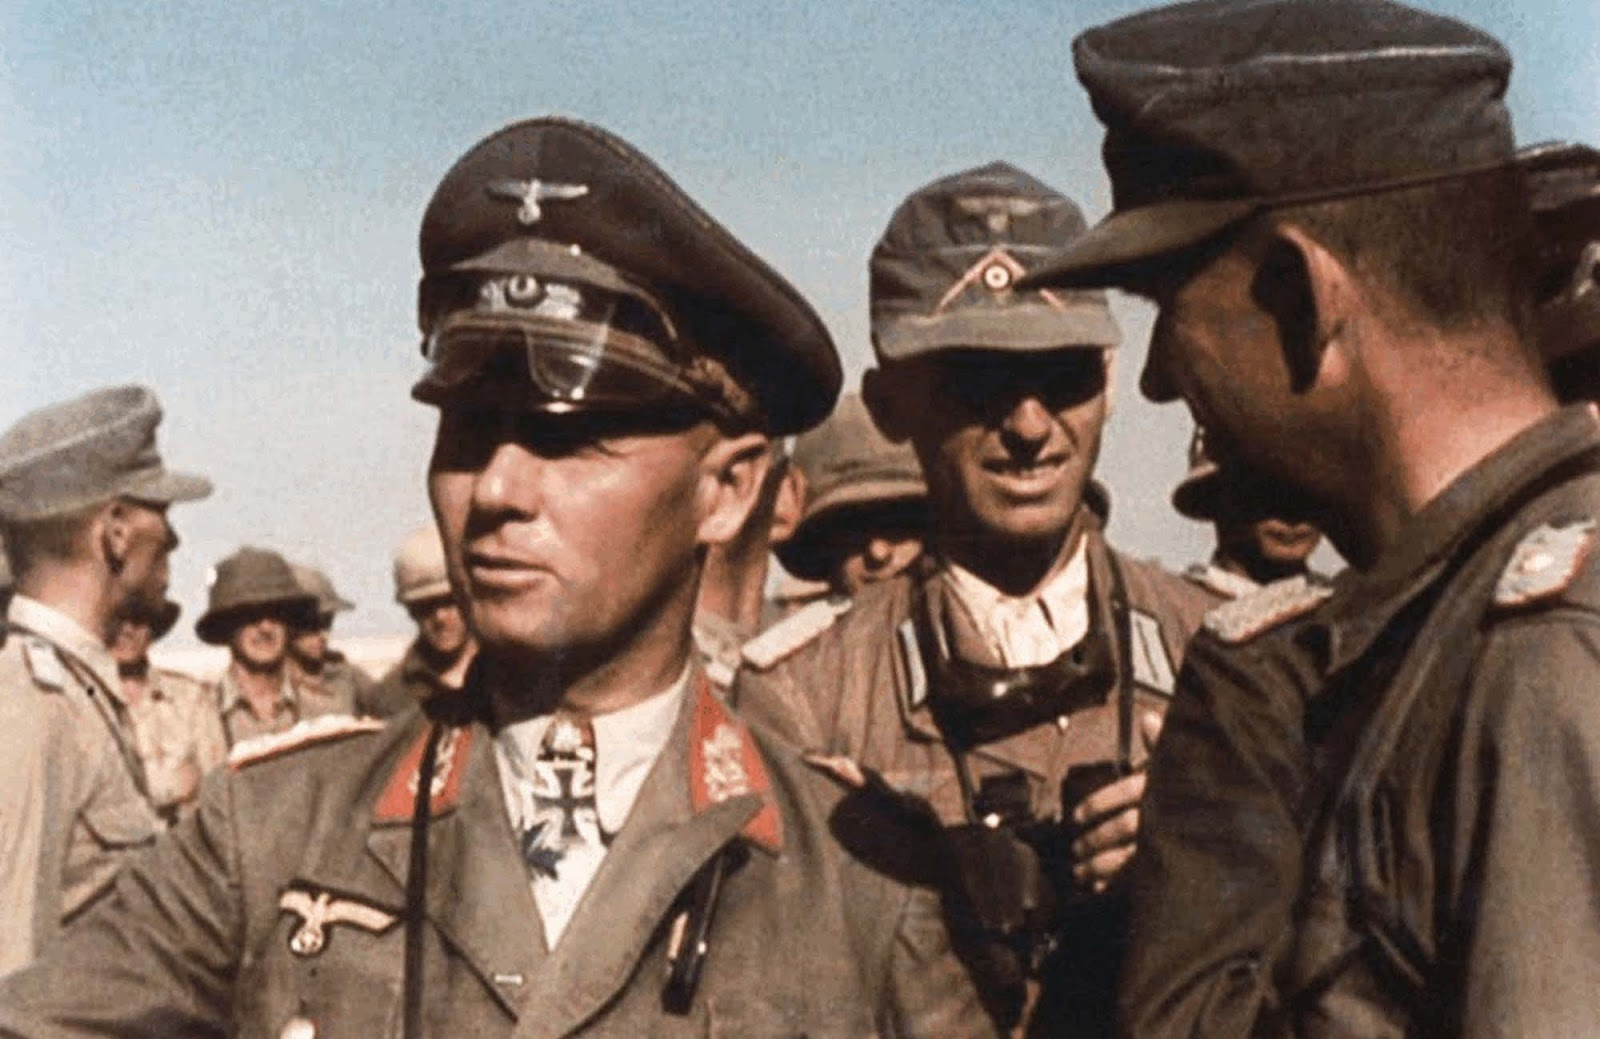 Erwin Rommel and his staff, Western Desert, 1942.